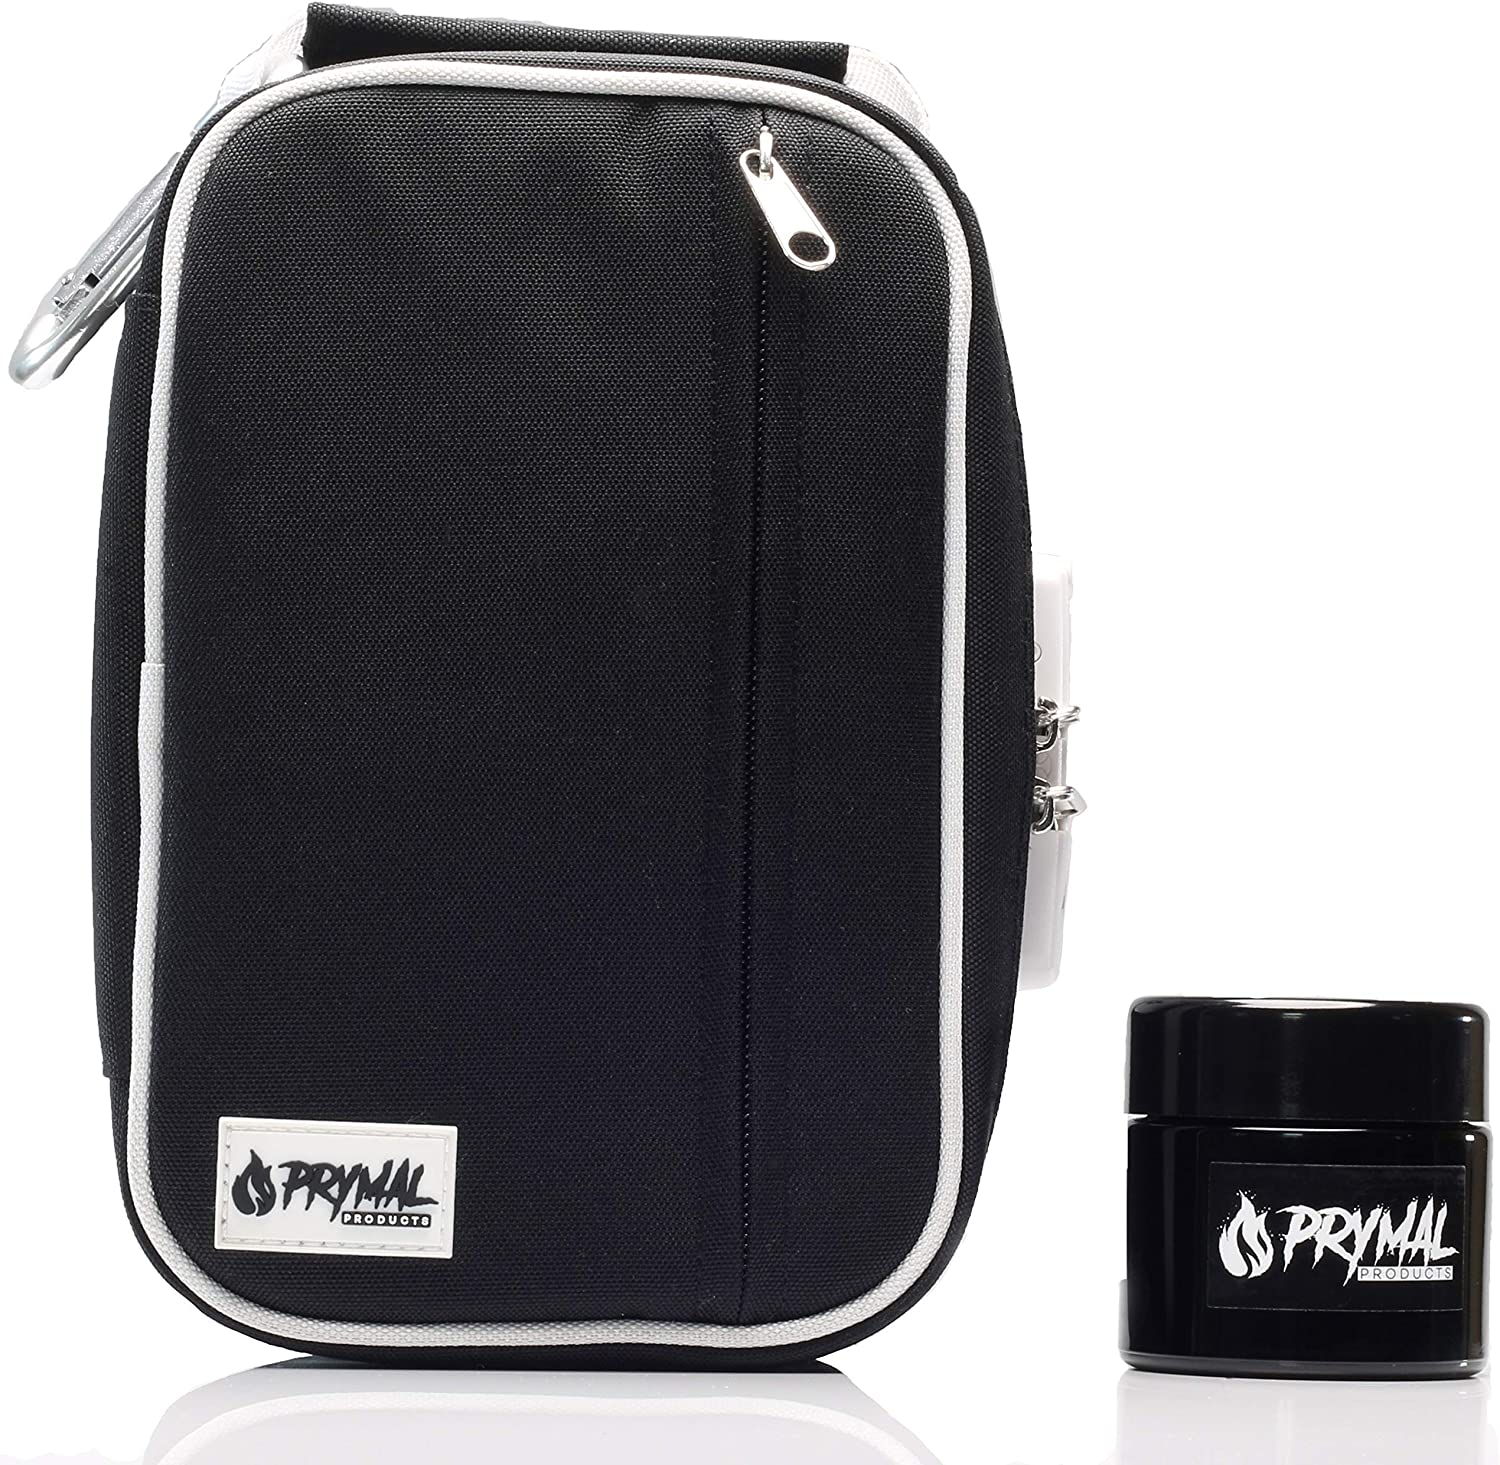 Prymal Products Smell Proof Large-scale sale Bag and S UV 100ml Jar Glass Free shipping Combo